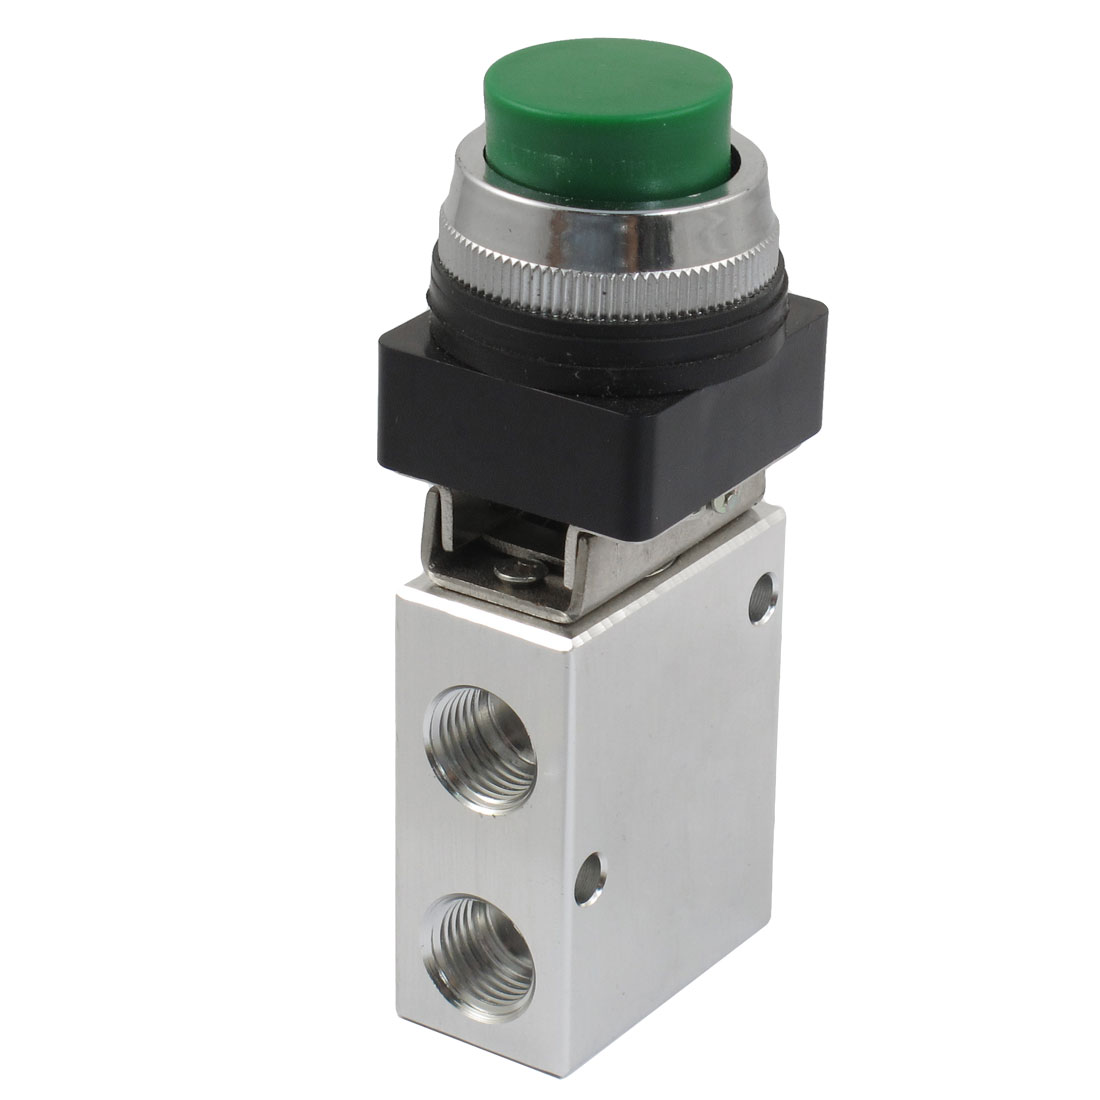 JM-322PPL 13mm Thread 2 Position 3 Way Green Push Button Air Mechanical Valve